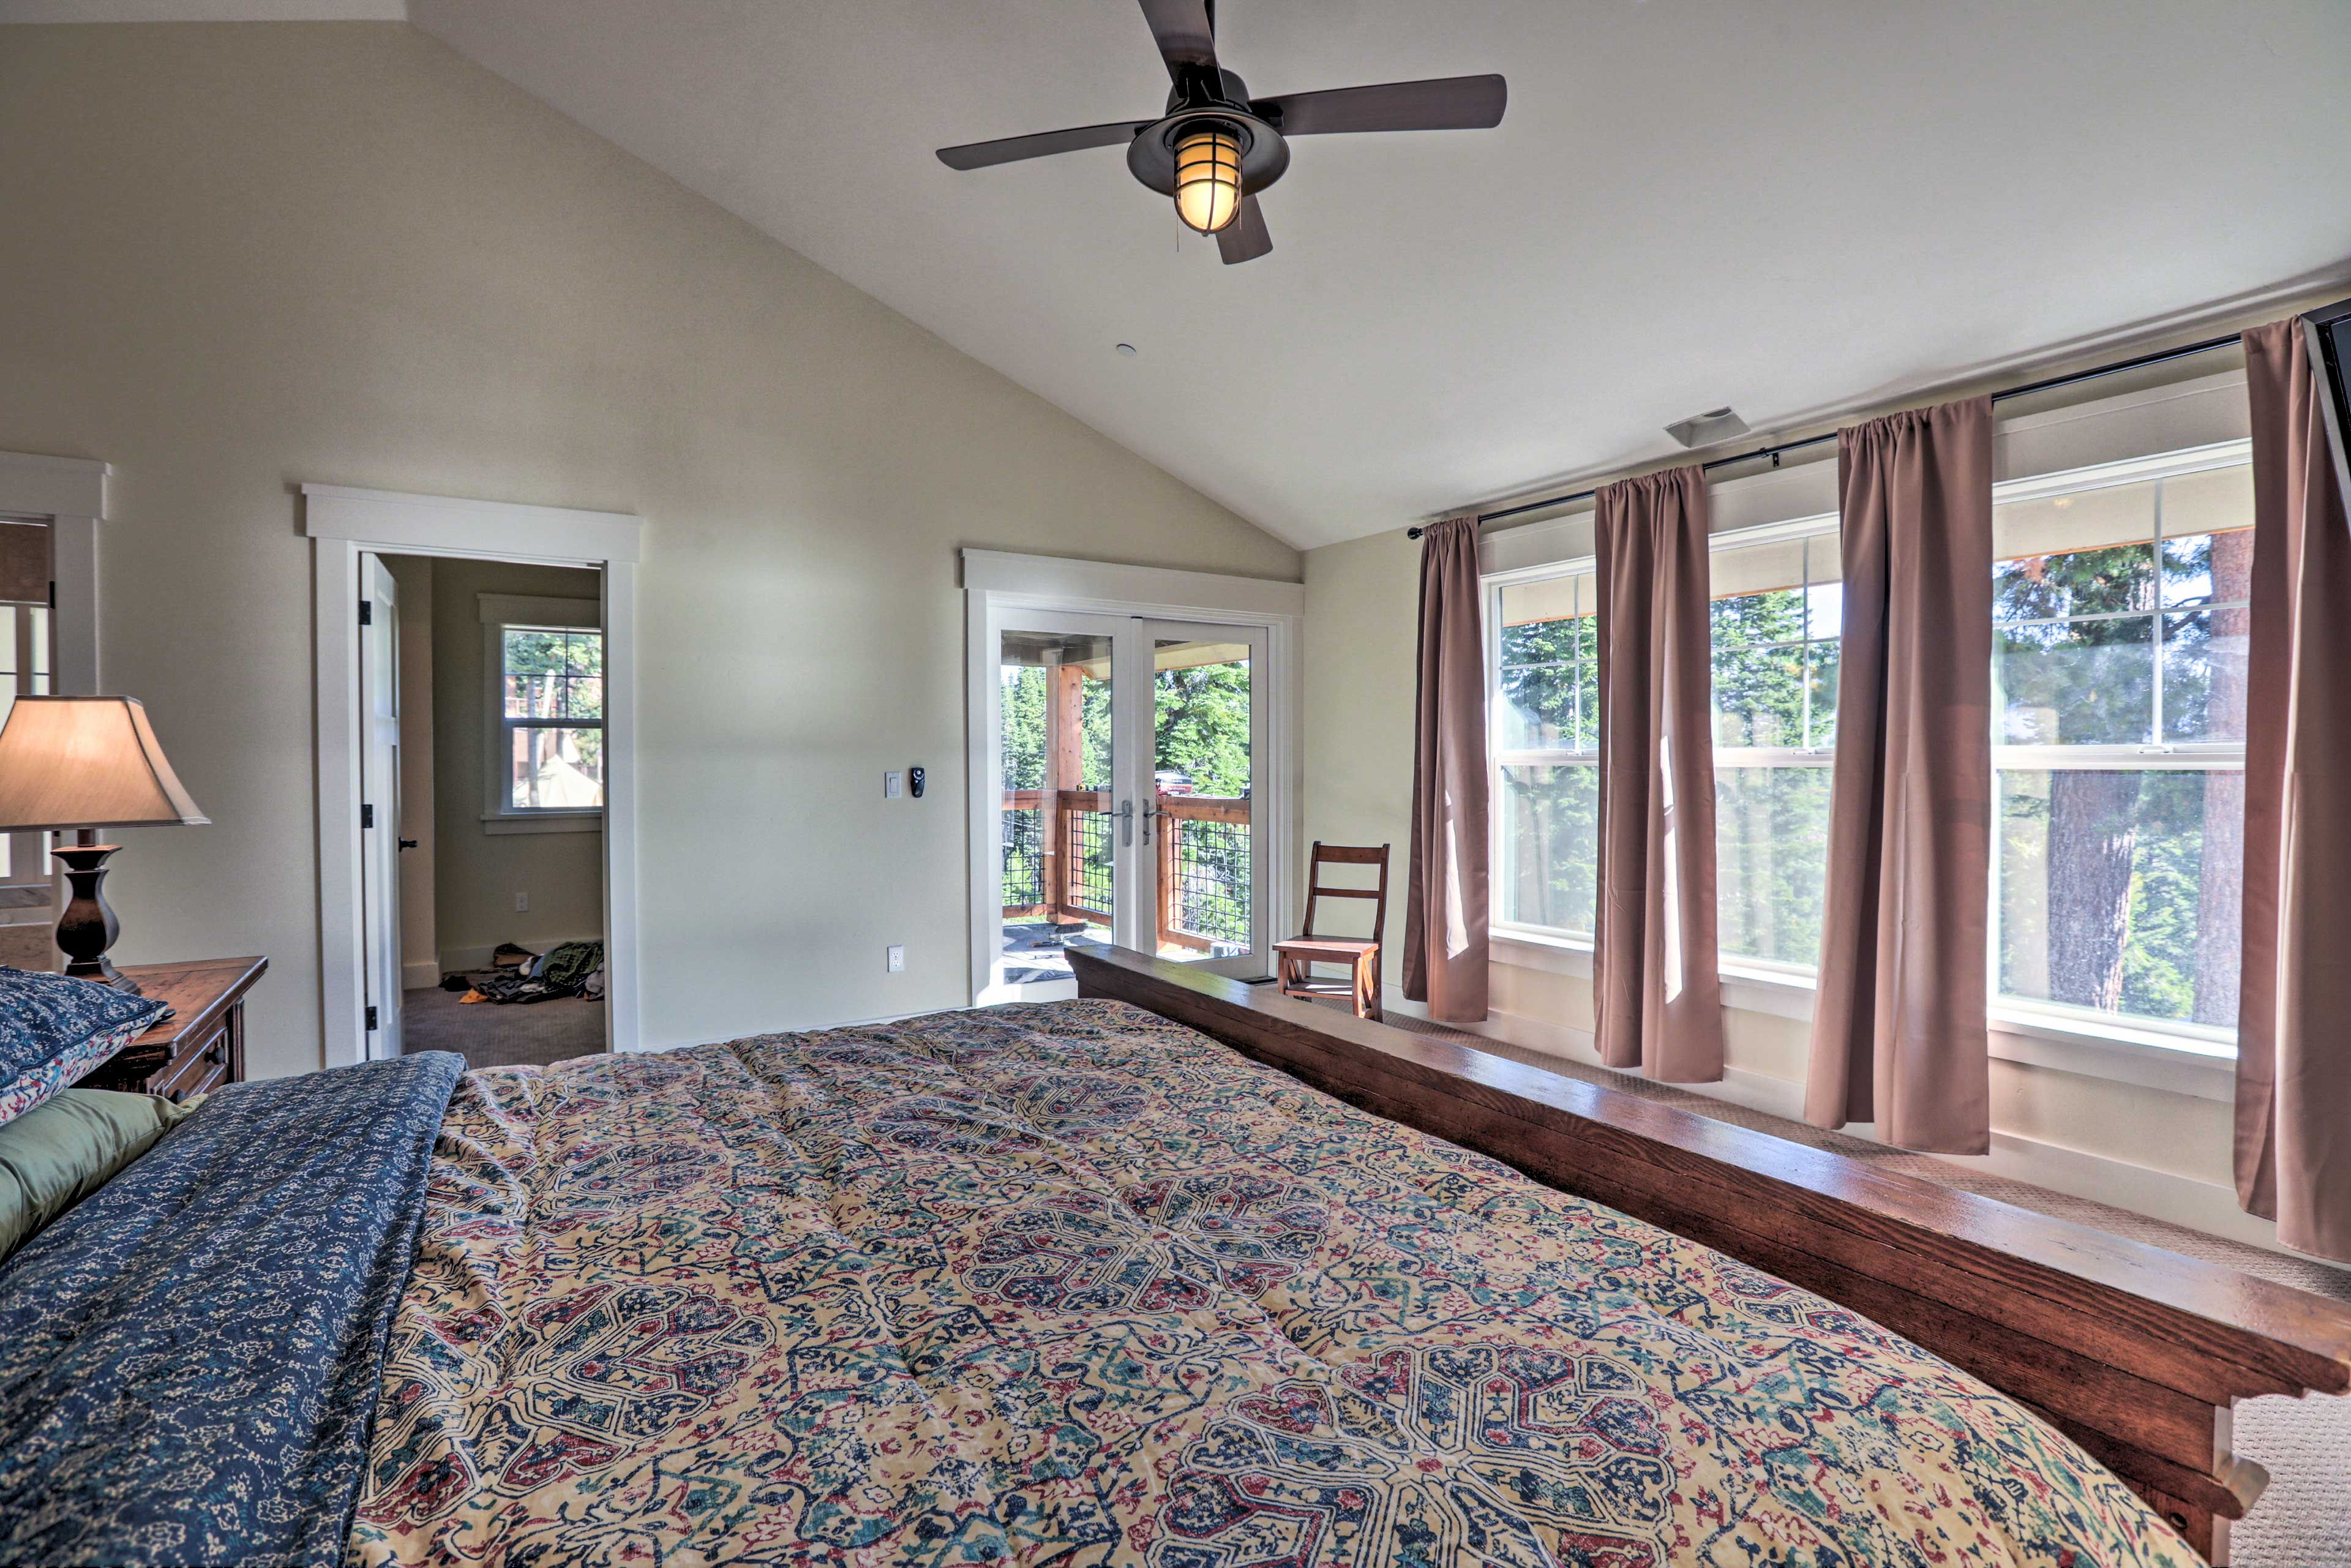 This bedroom also shares balcony access.